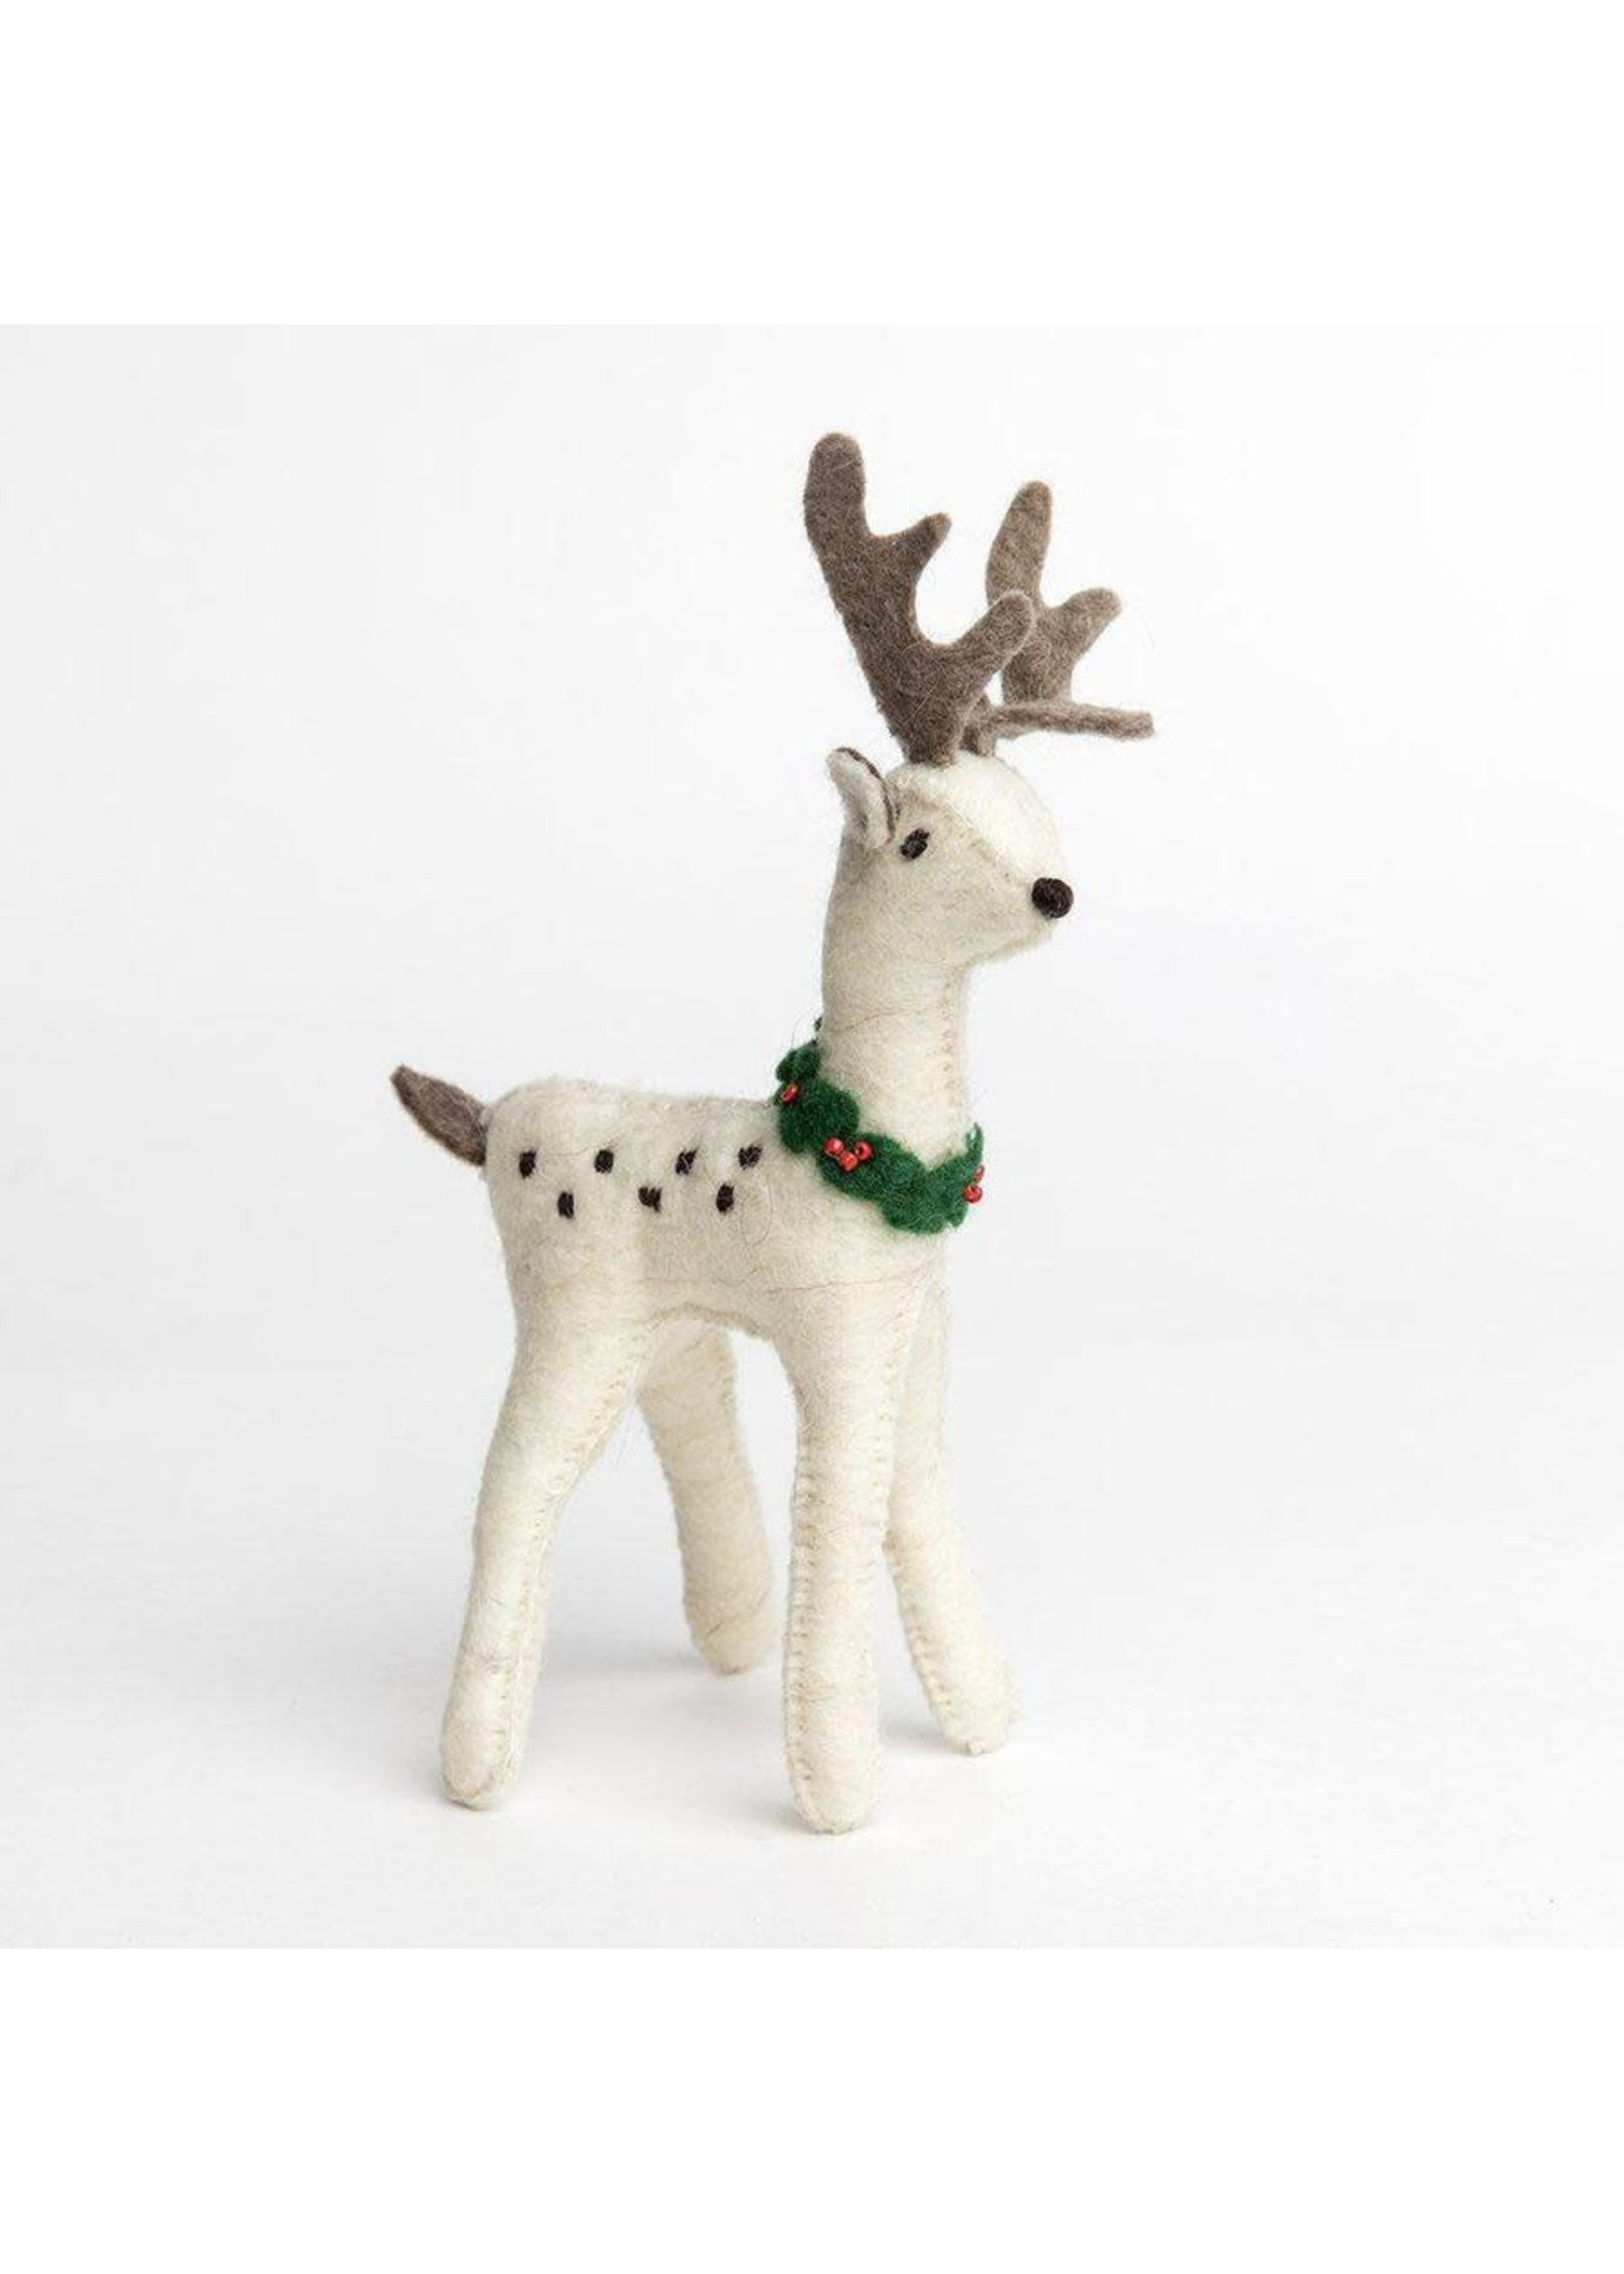 Ornament - Snow Buck - White Deer with Dots - Large